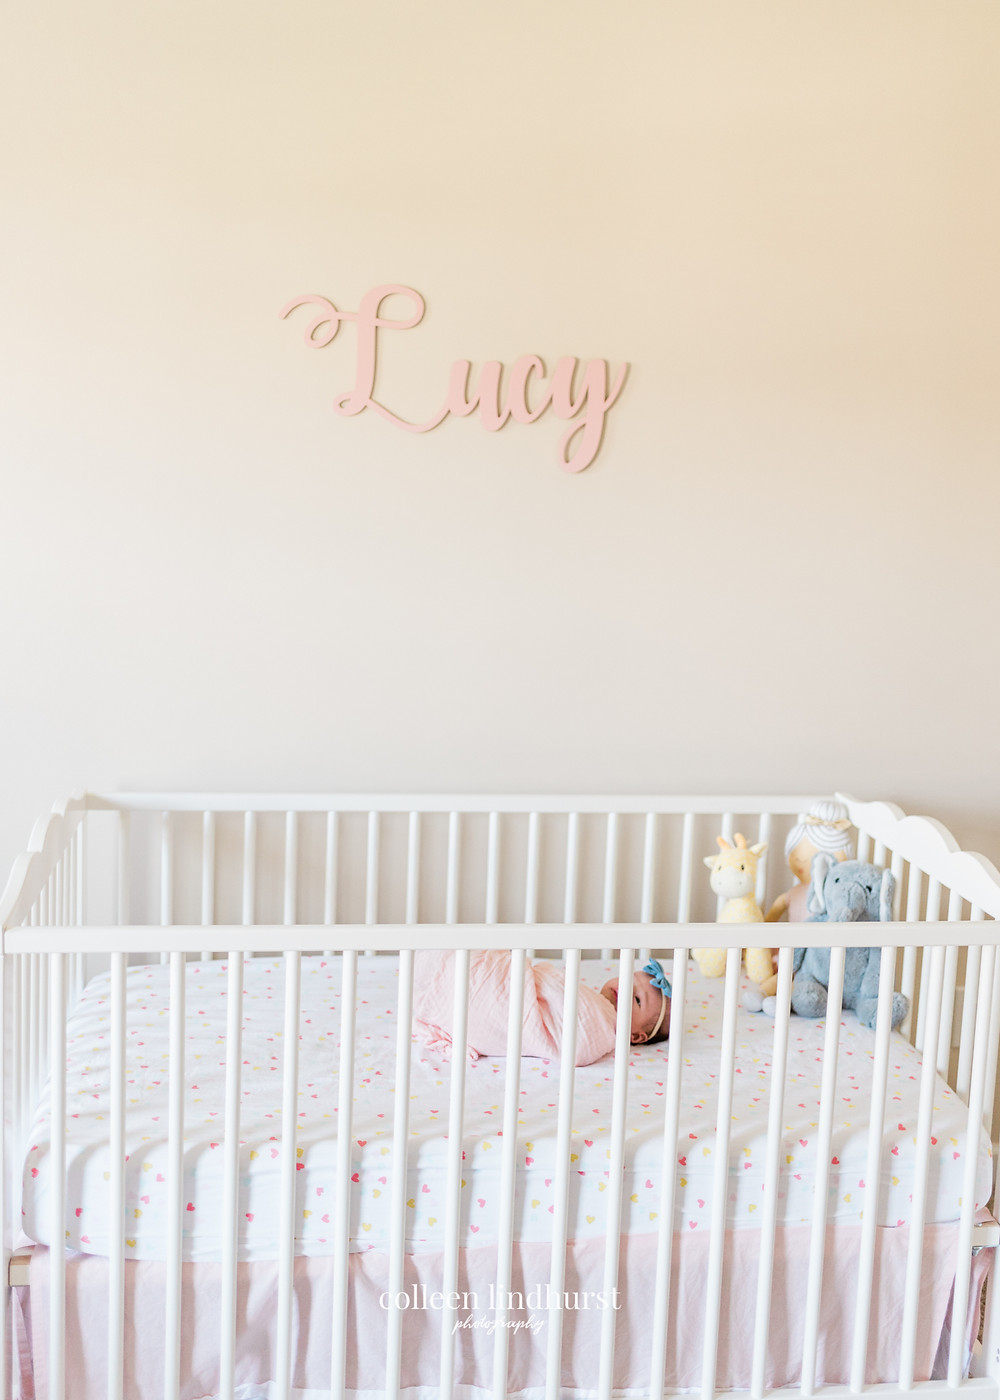 Lifestyle in-home newborn photography | taking my own newborn photos | baby lucy | Columbus Ohio | Colleen Lindhurst Photography